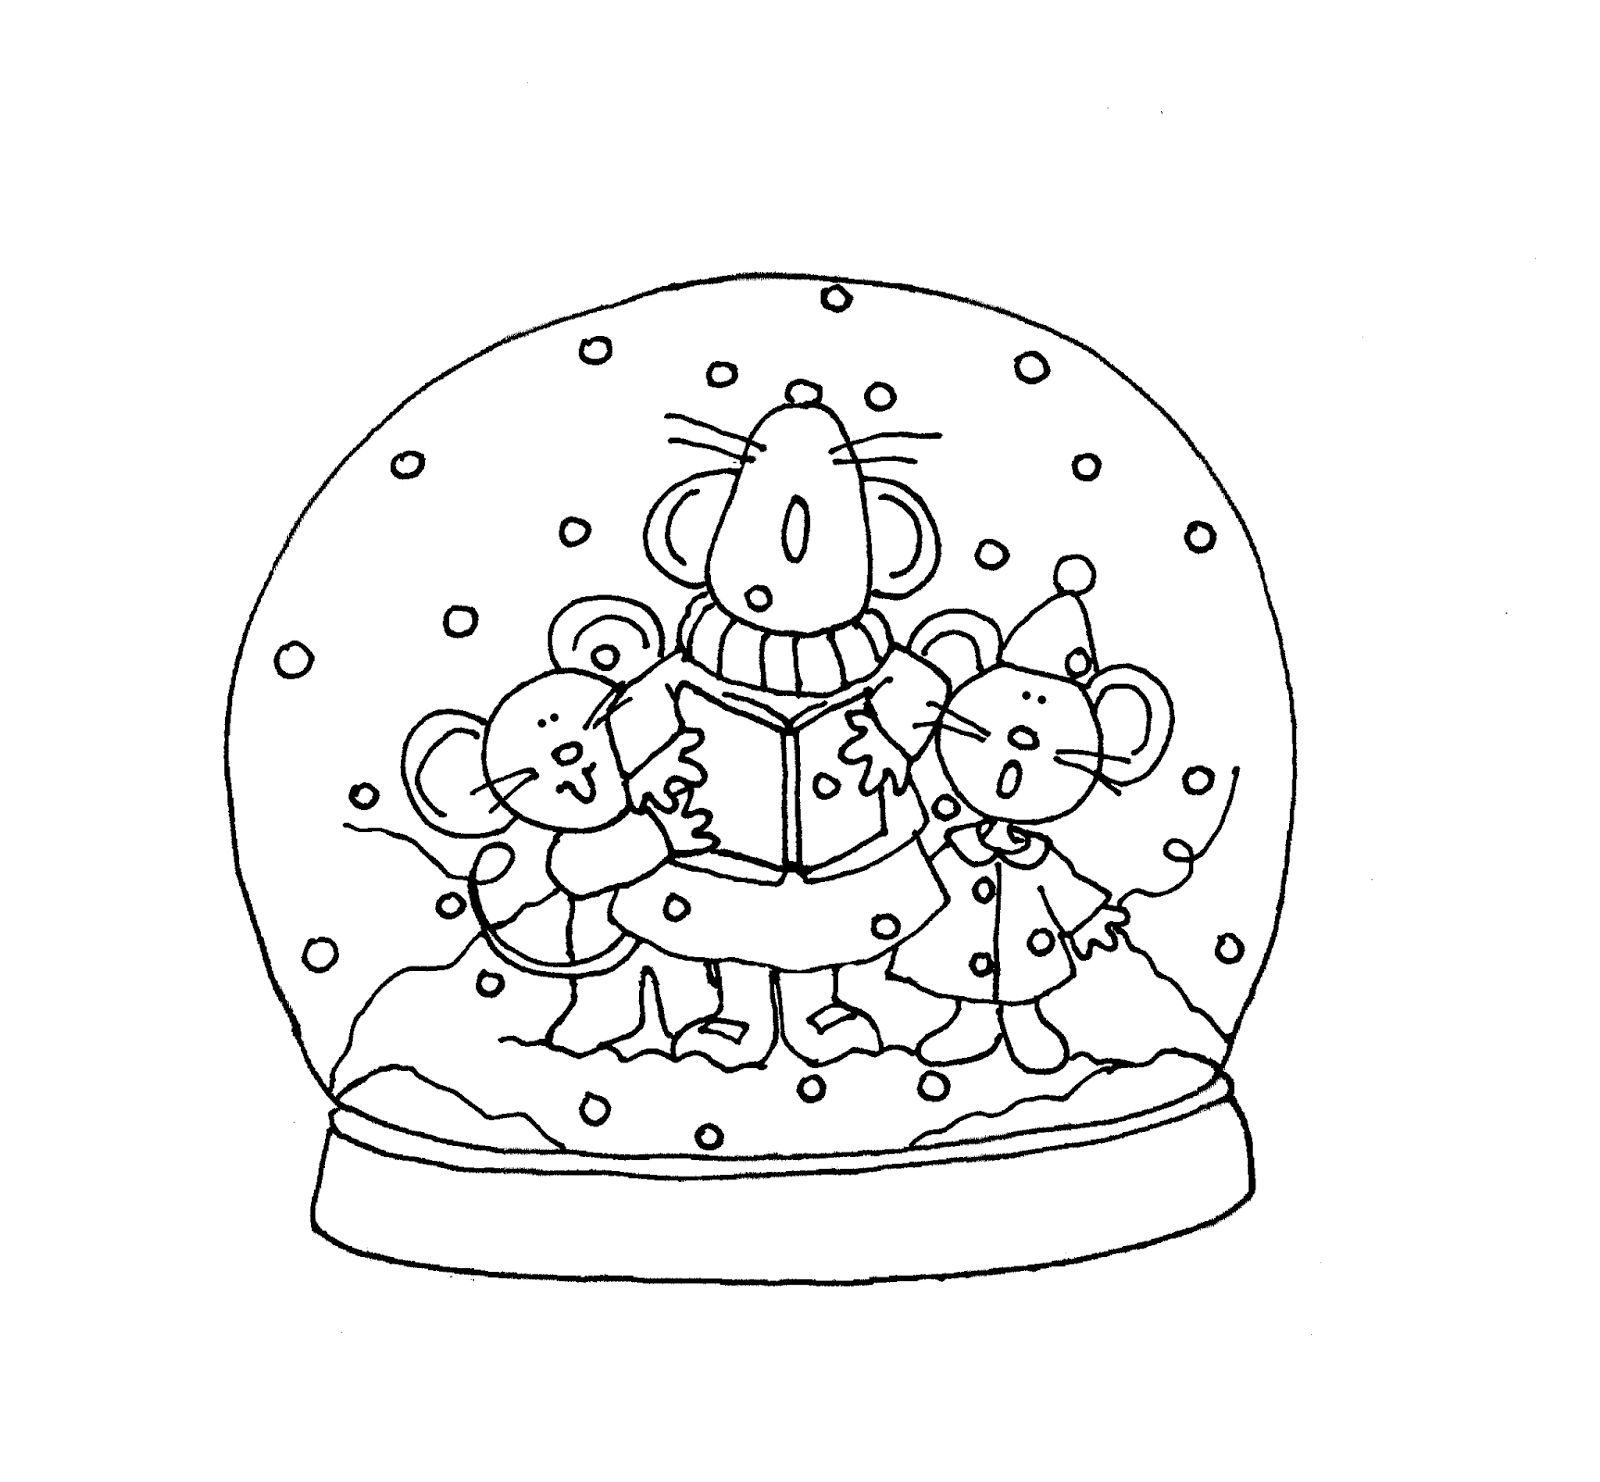 fox snow globe coloring pages - photo#14